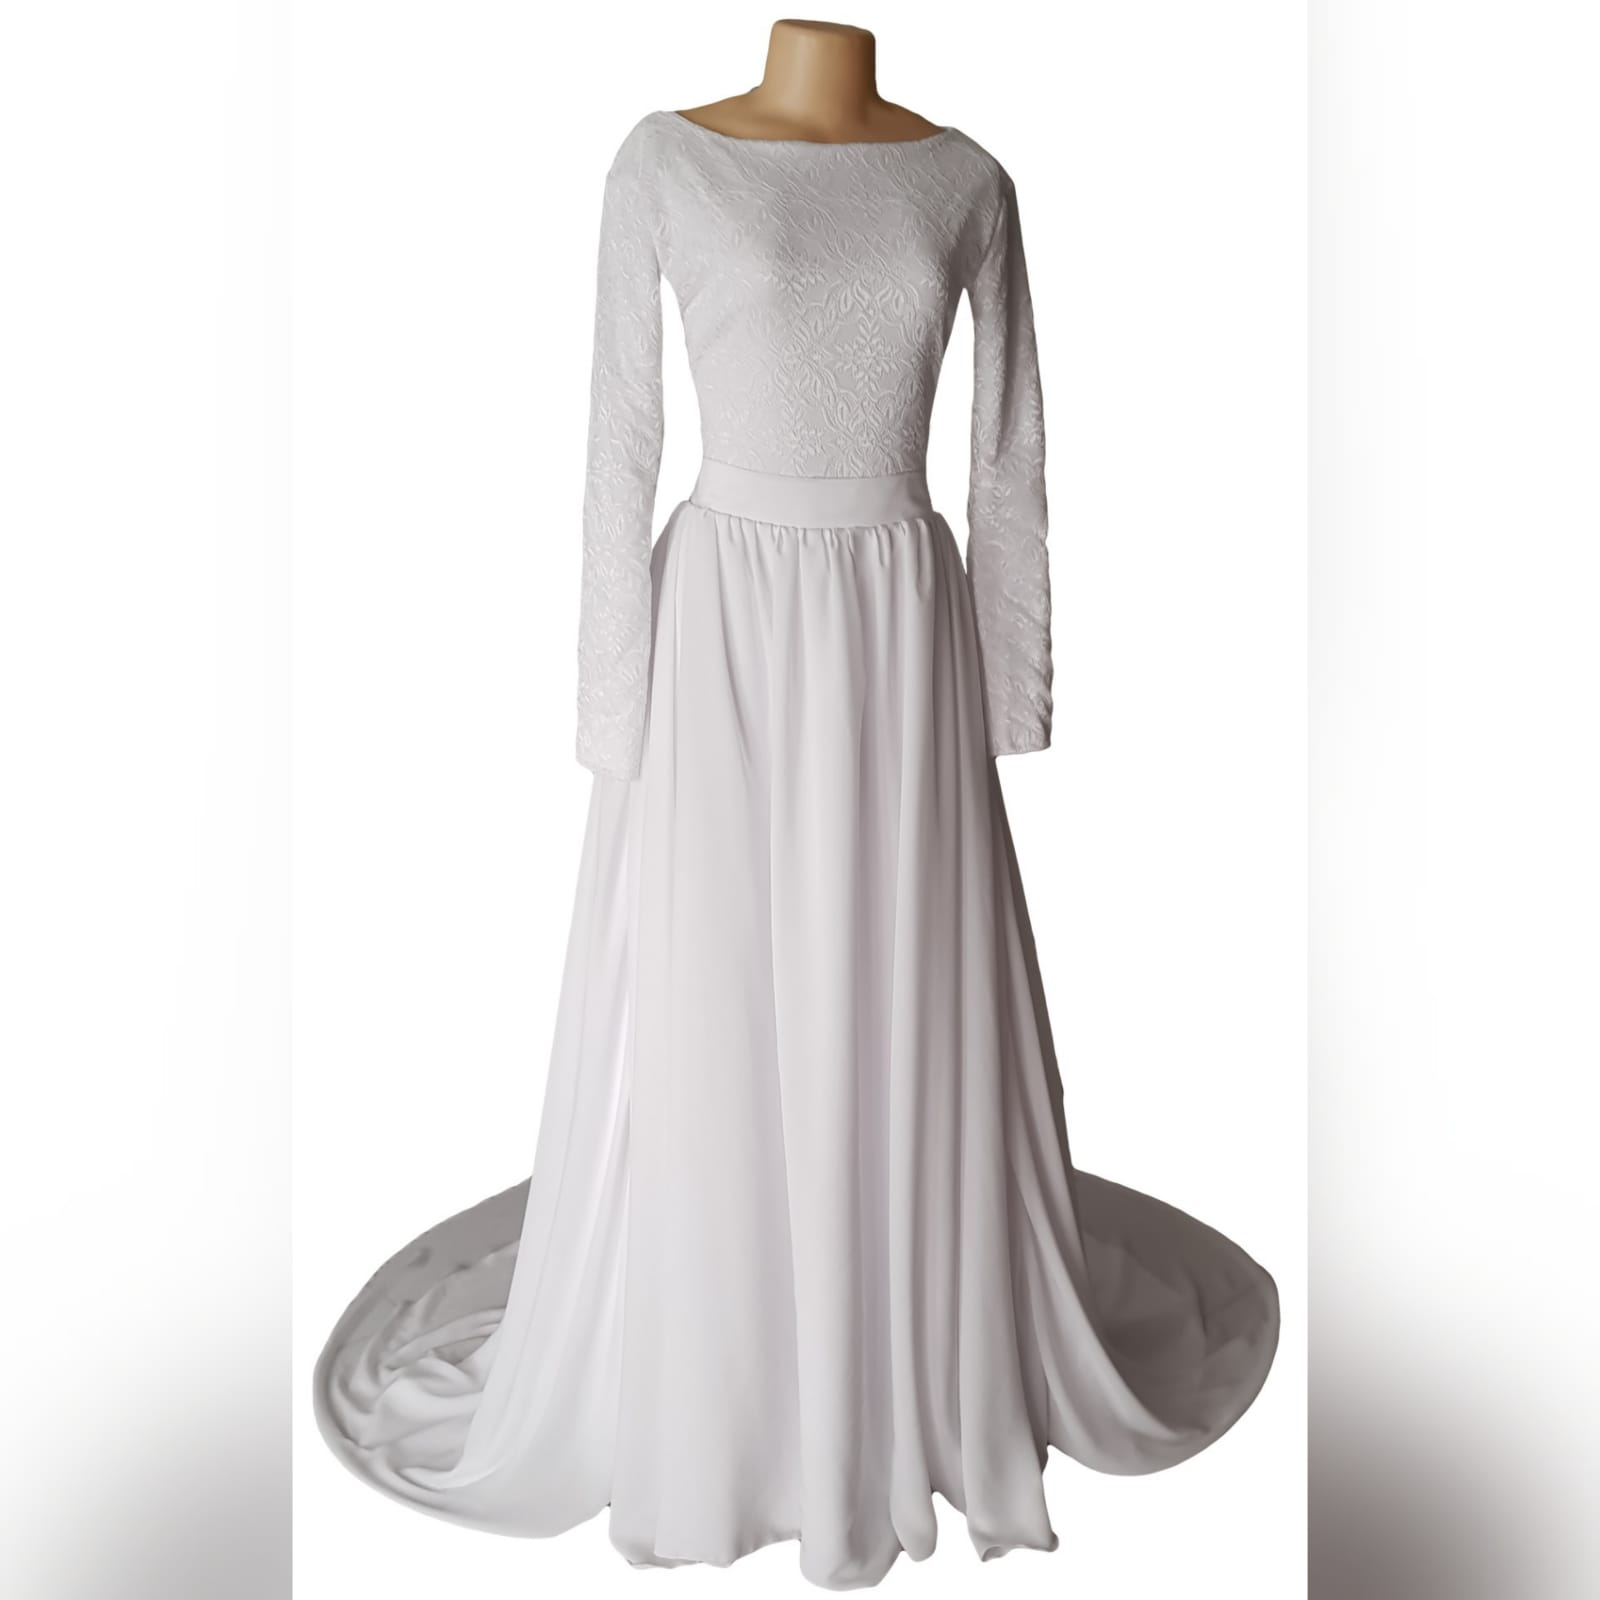 2 piece white flowy simple wedding dress 5 2 piece white flowy simple wedding dress. A bodysuit fitted lace top with long sleeves and jewel neckline. Flowy wide long skirt with a chiffon layer and a long train.